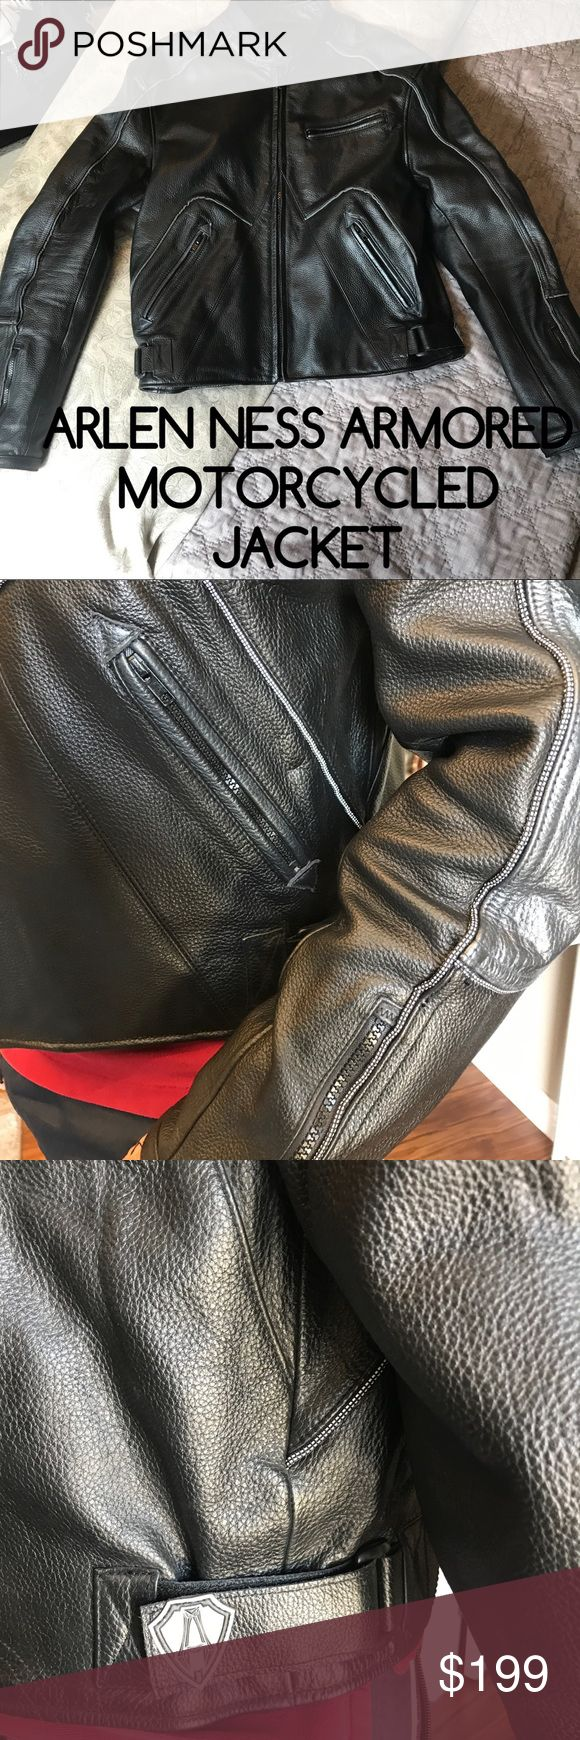 Arlen Ness Motorcycle Jacket, Medium In excellent pre-owned condition, appears to be in-worn. This super heavy leather motorcycle jacket is not a professional racing jacket however has body armor in the elbows and in the back. No scratches, stains or wearing. Size is Medium.  Pay list price and I will pay your shipping. Arlen Ness Jackets & Coats Performance Jackets